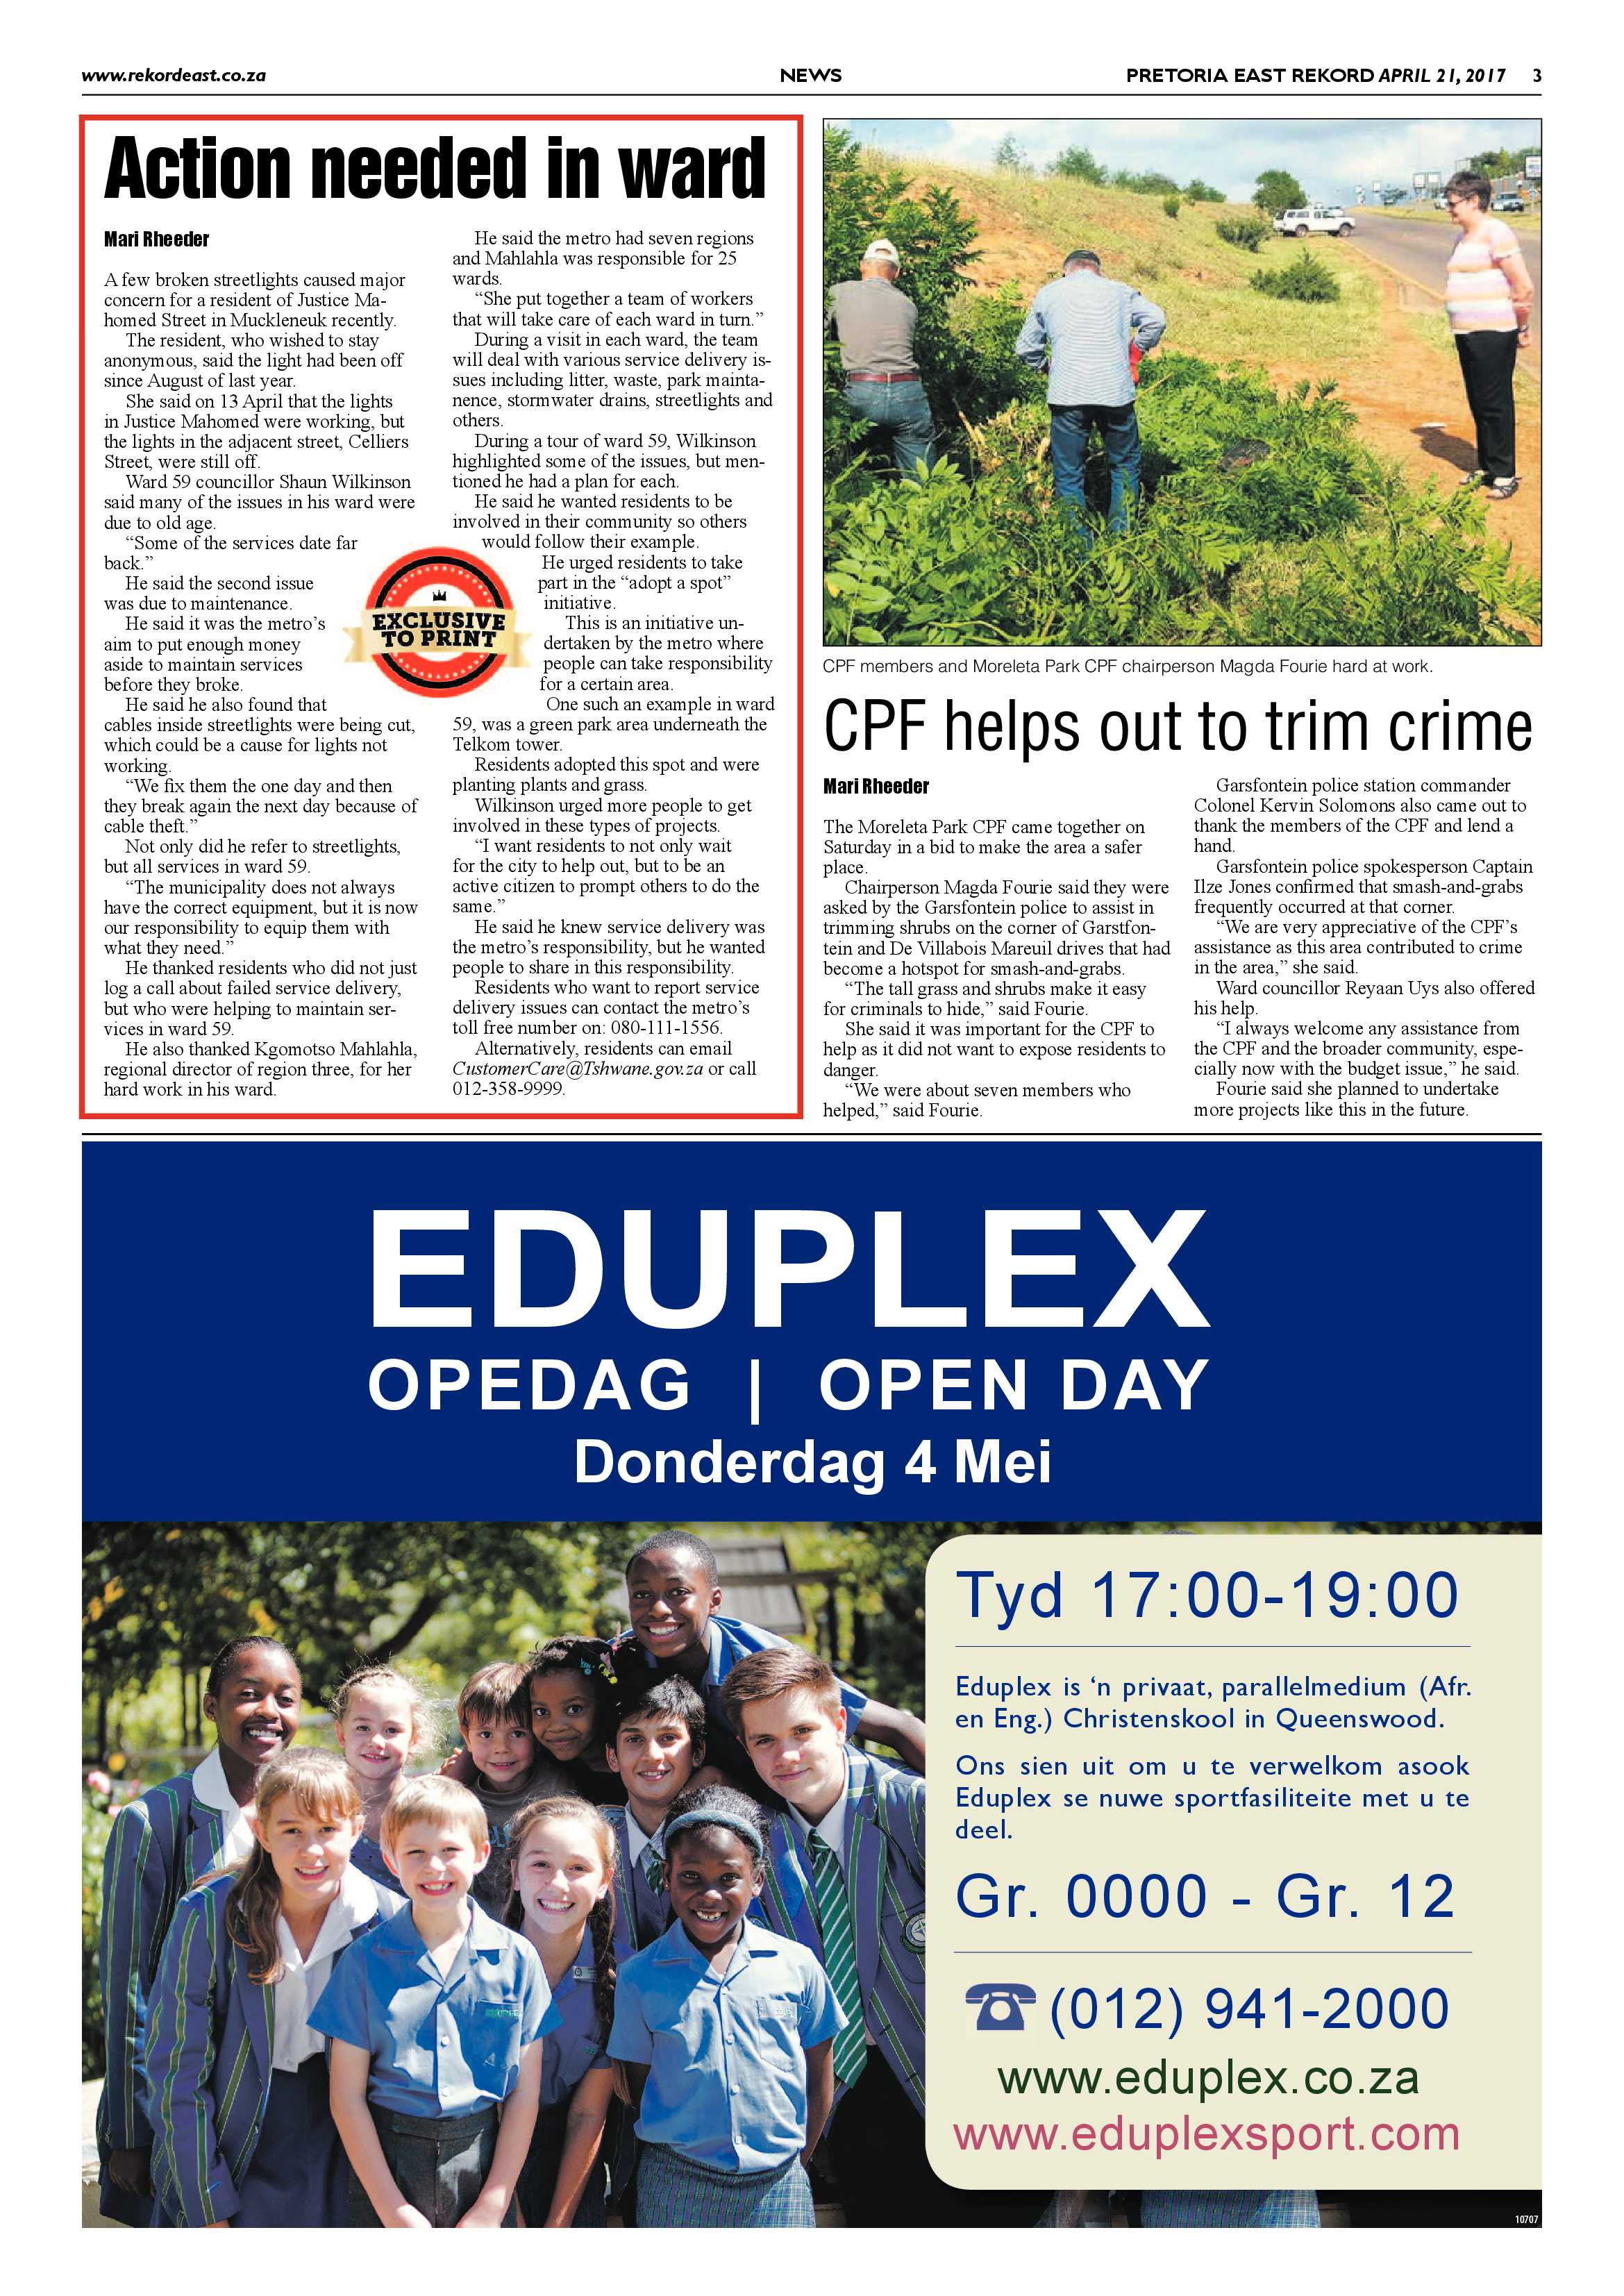 rekord-east-21-april-2017-epapers-page-3